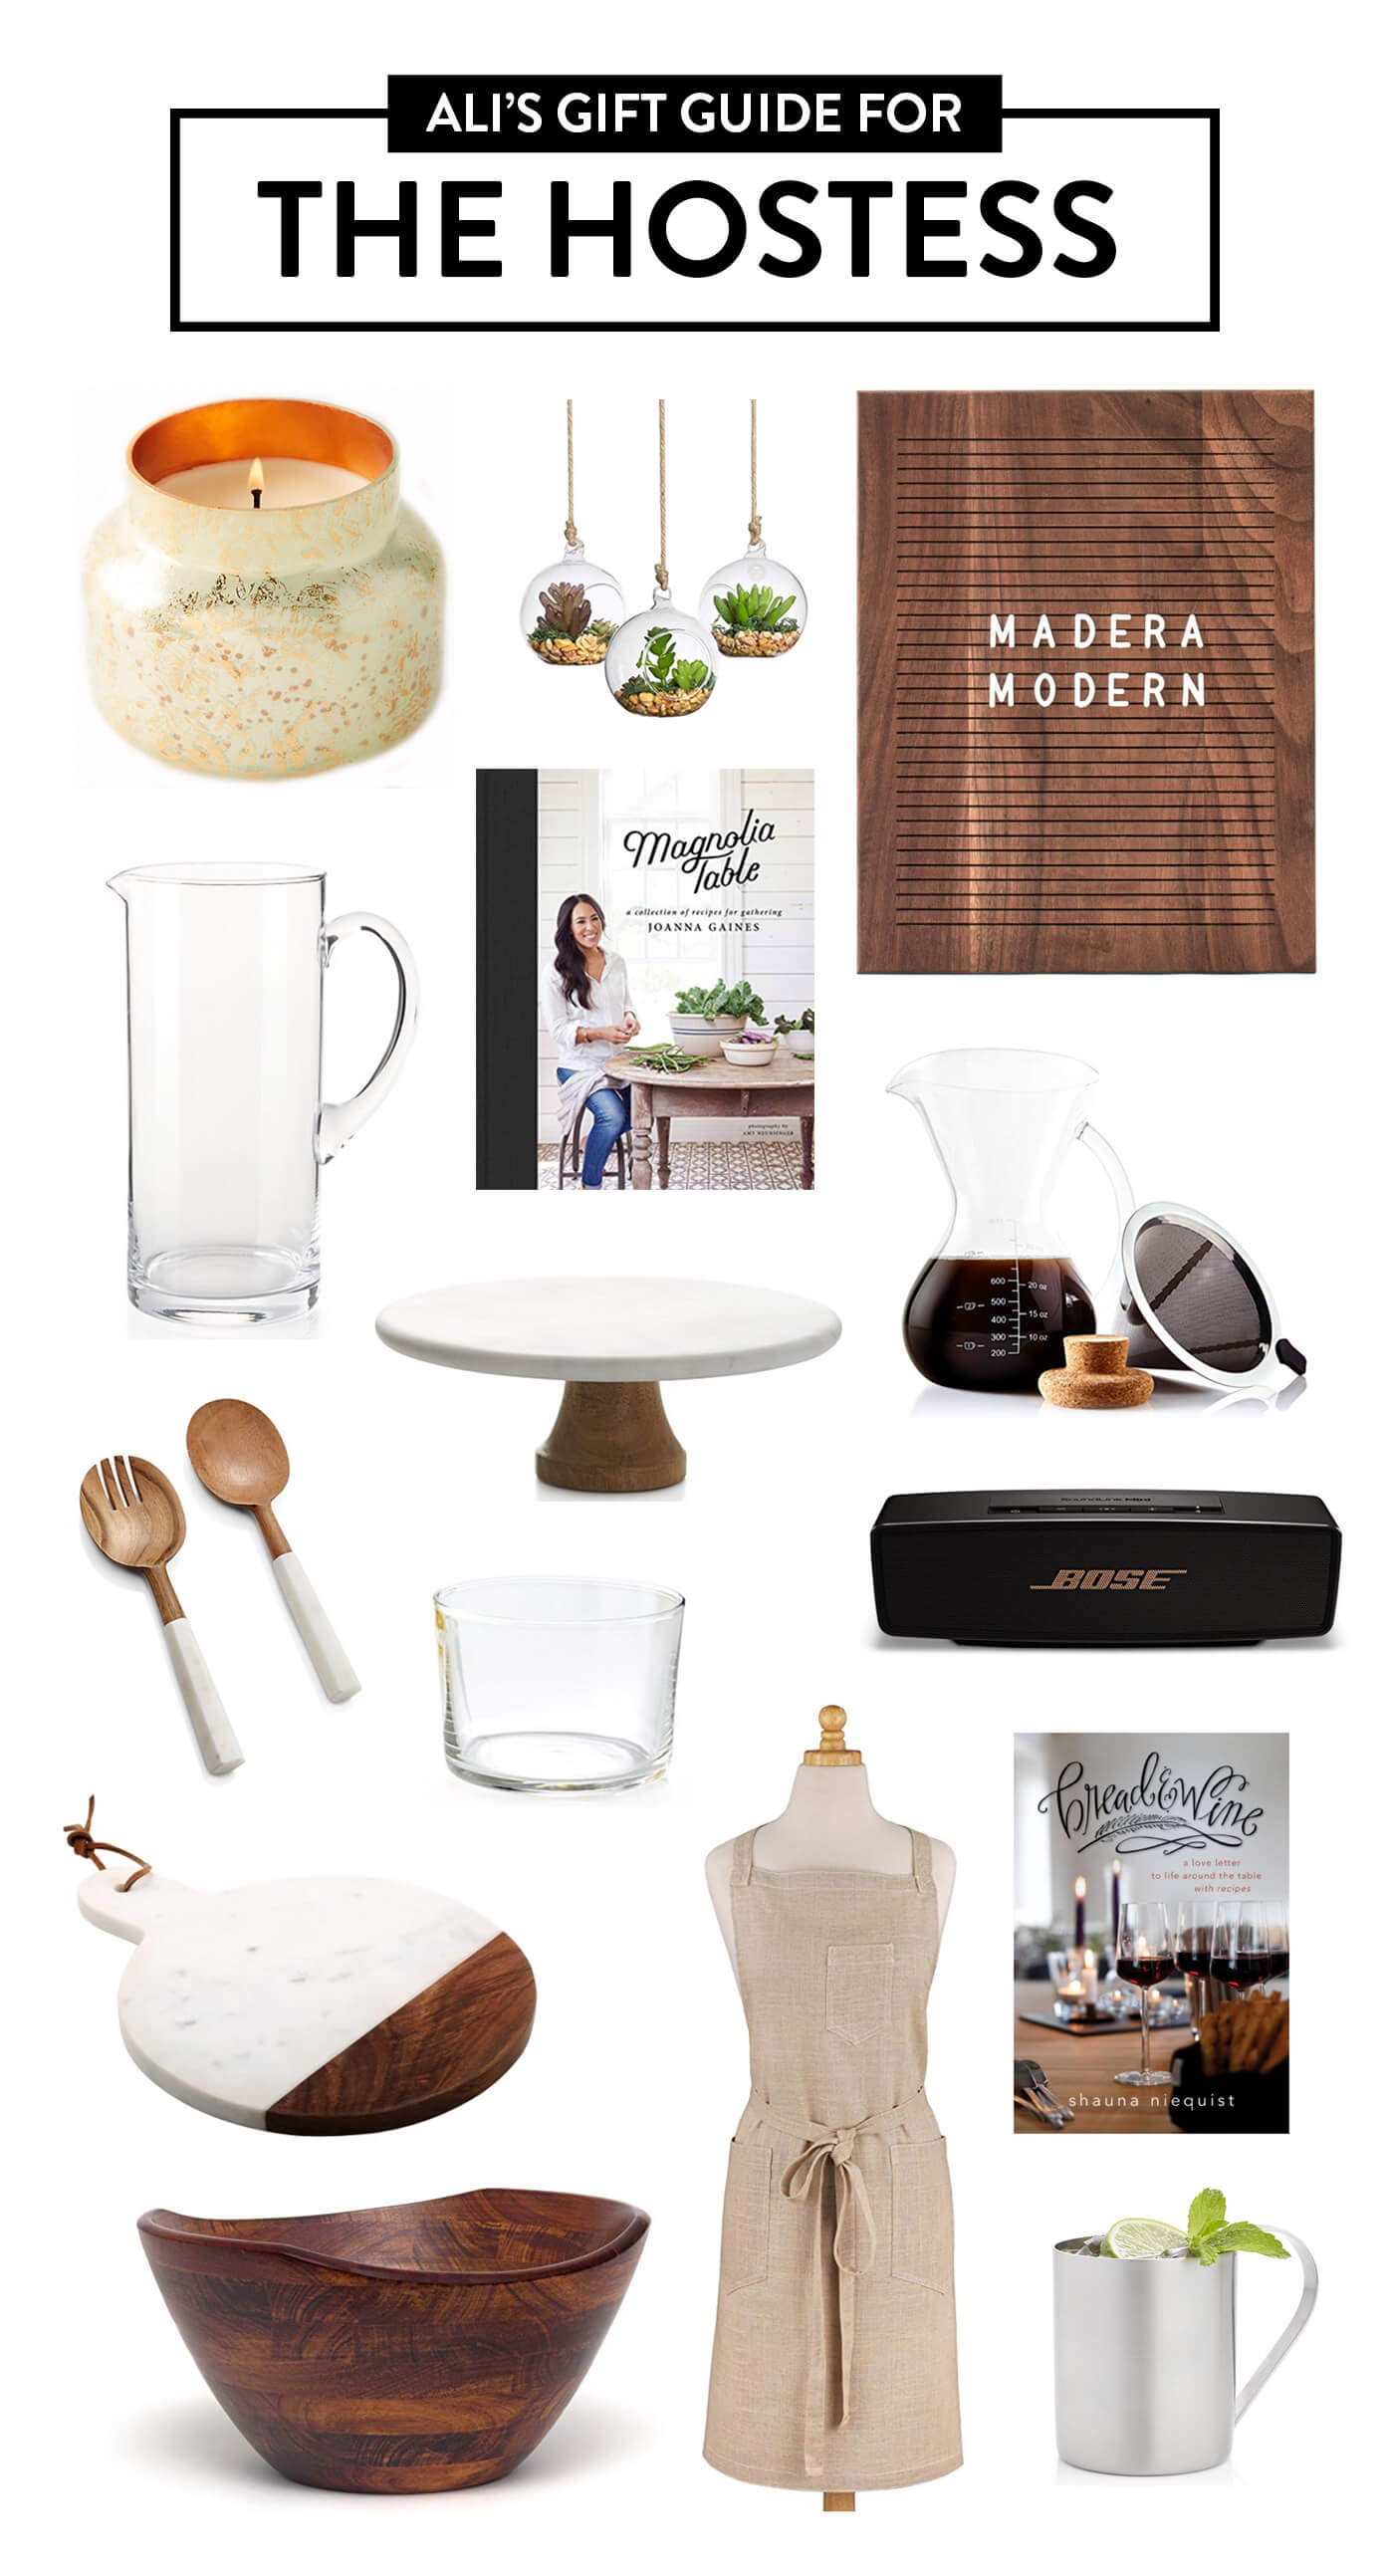 2018 Gimme Some Oven Gift Guide: The Hostess